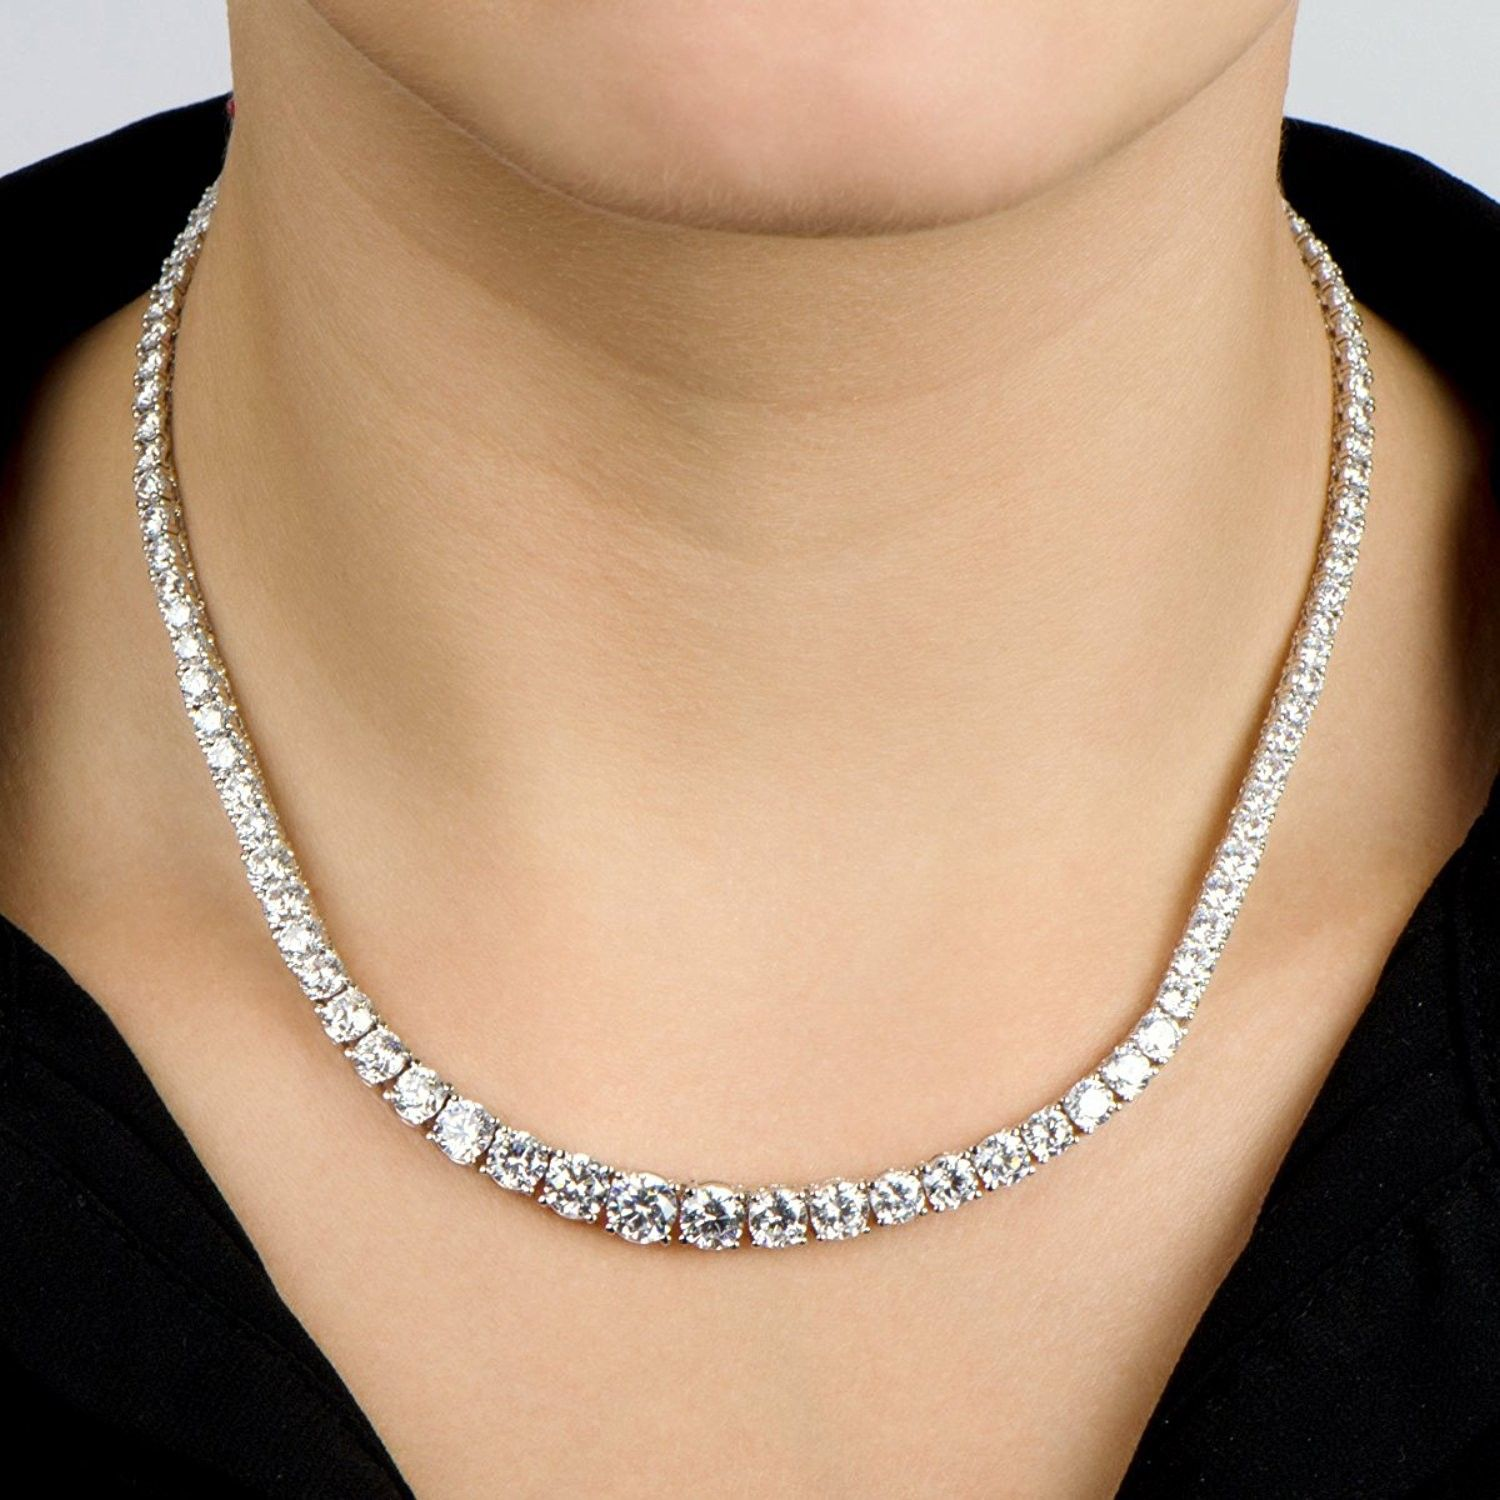 Zircon Solitaire Set Tennis Chain Necklace Earrings White Gold Plated For Women C612bt1xg1p Diamond Bar Necklace Diamond Necklace Simple Silver Jewelry